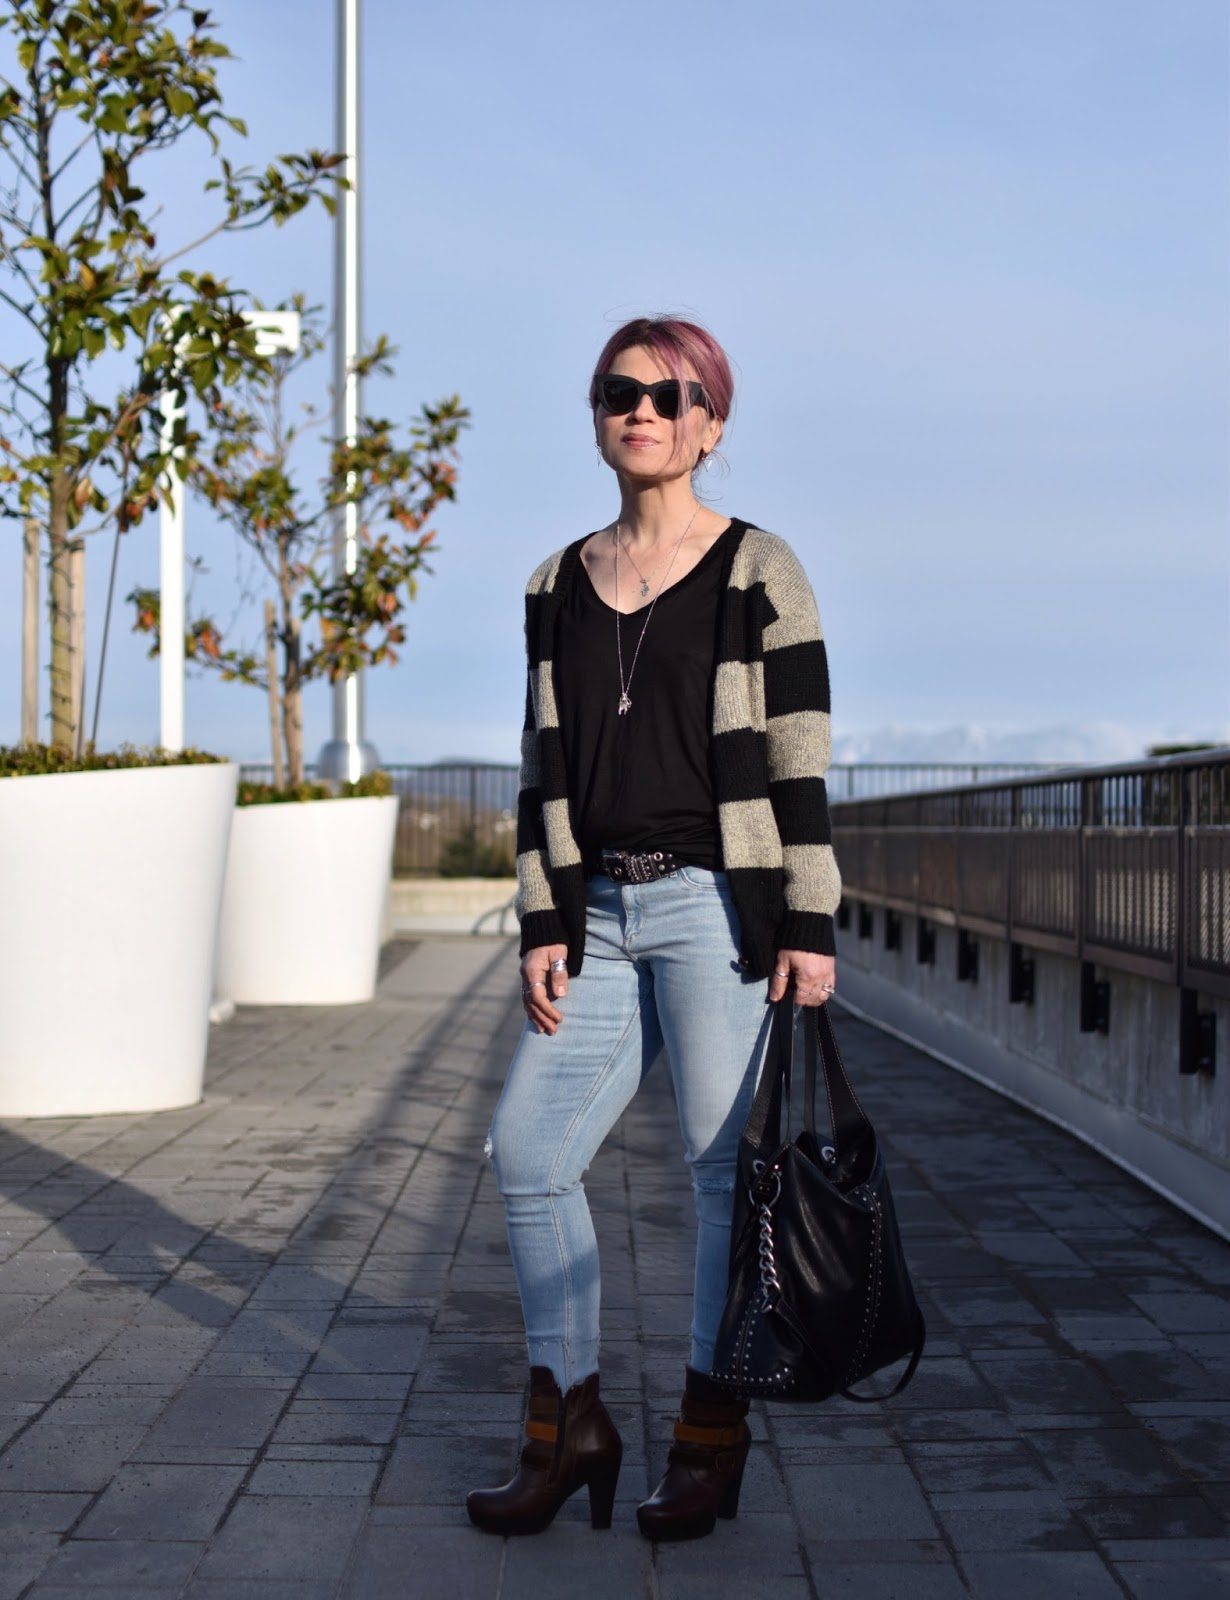 Monika Faulkner outfit inspiration - styling a striped grandpa cardigan with a slouchy tee, distressed skinny jeans, and platform booties